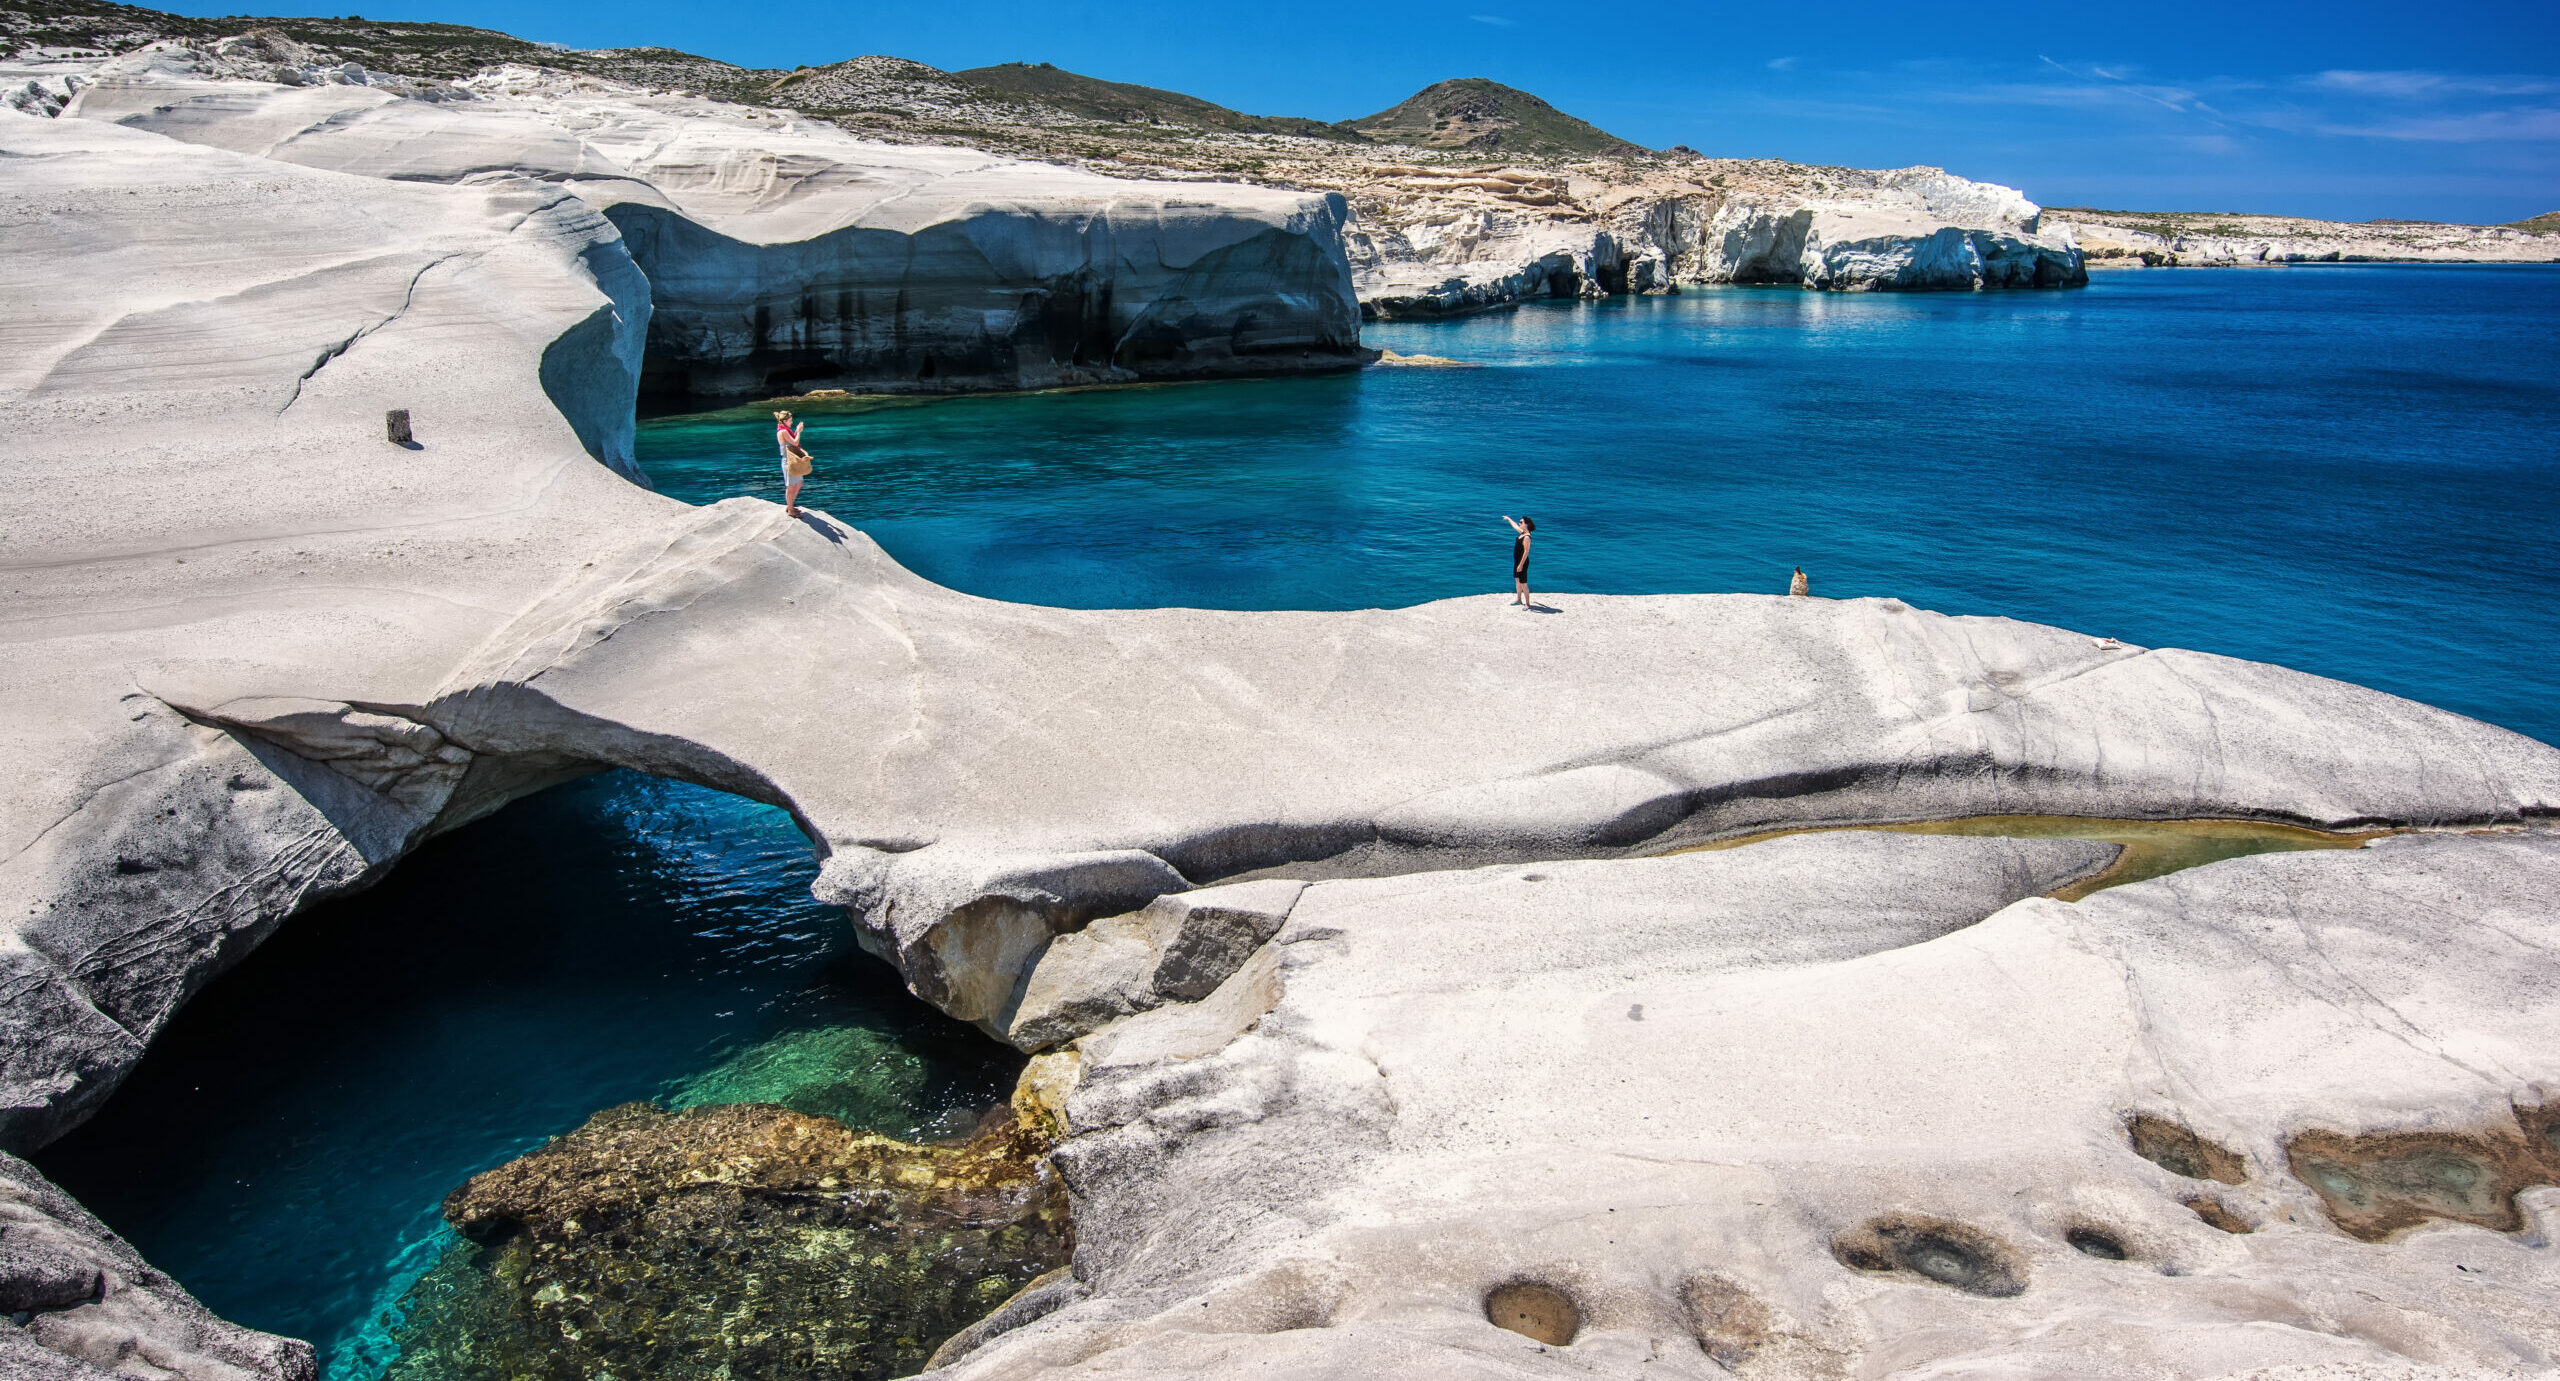 The exotic Greek beaches which were pirate-related